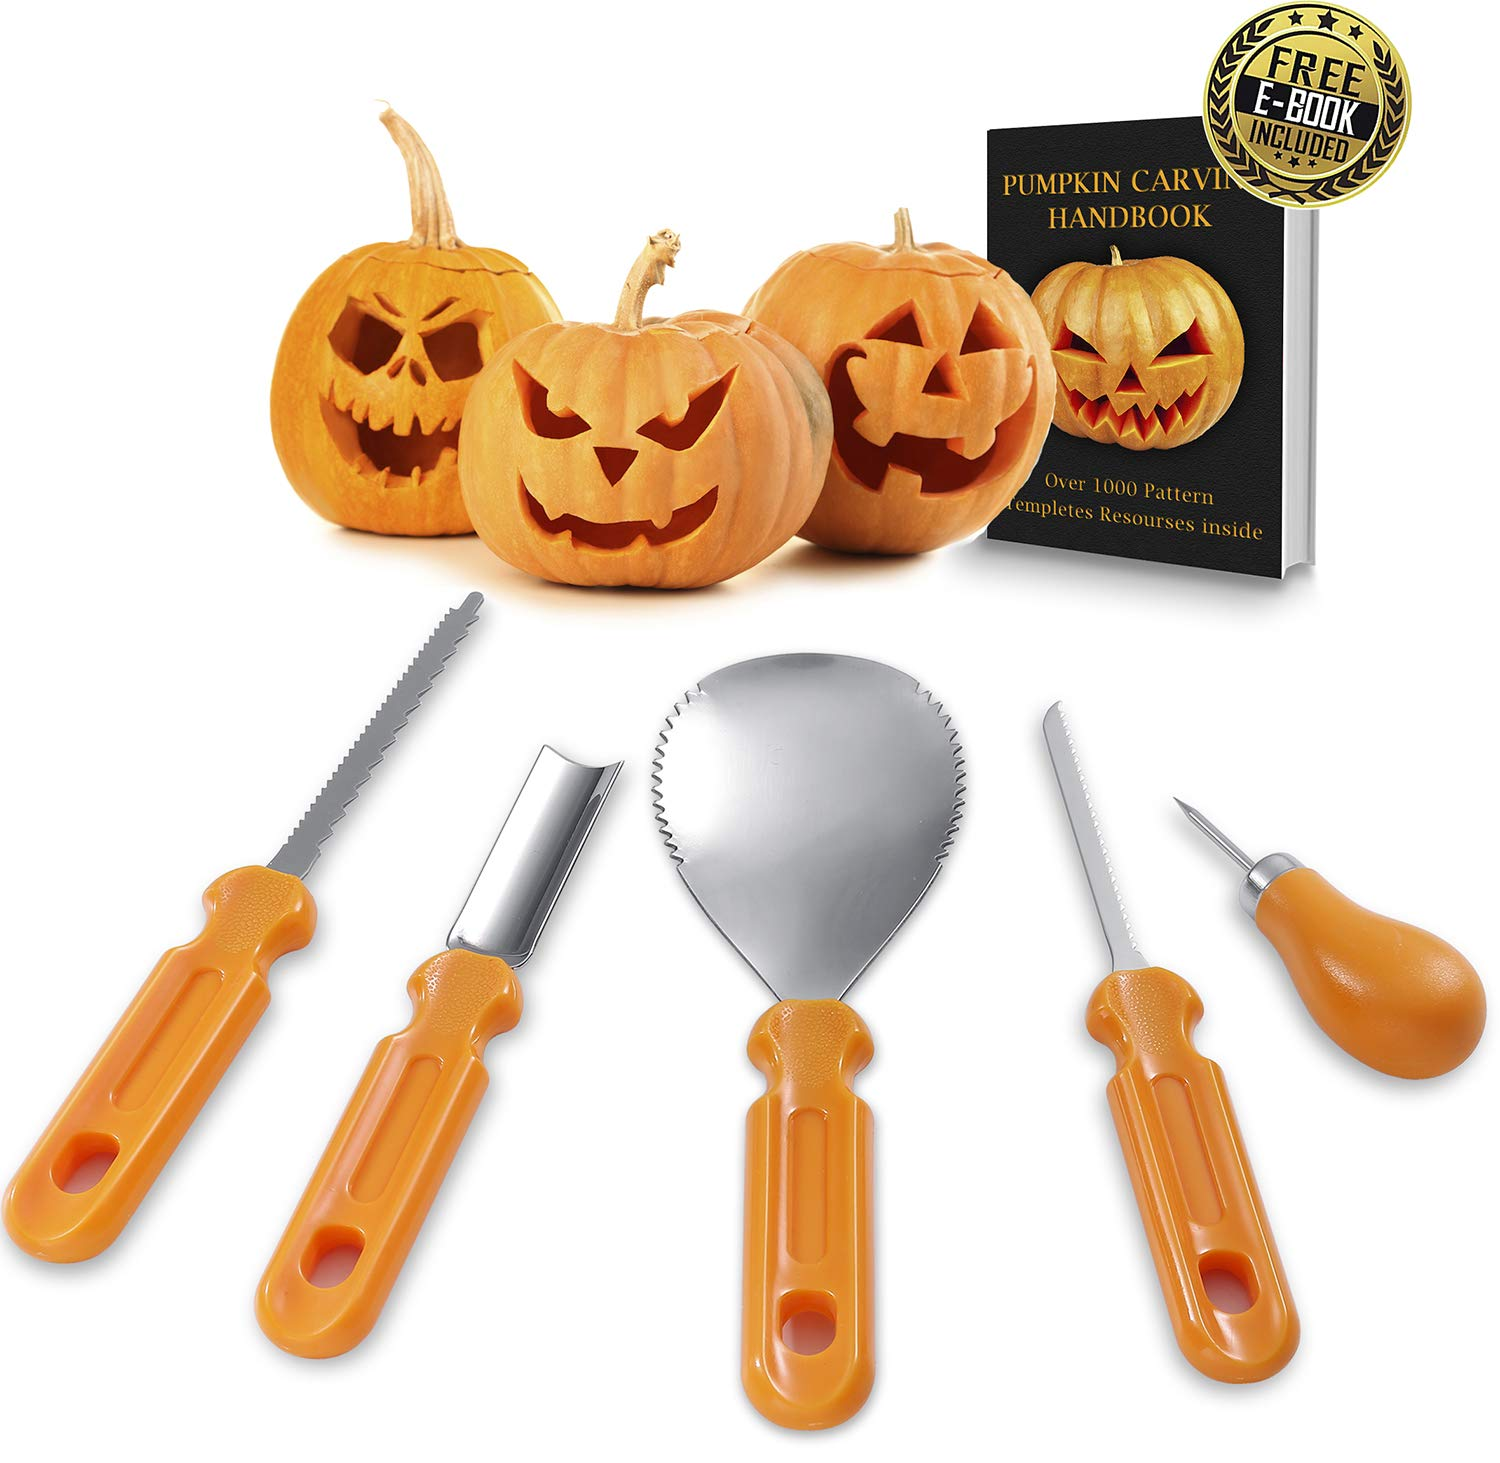 Best Deal Pumpkin Carving Kit - Professional Heavy Duty Stainless Steel Tool Set, Includes 5 Carving Tools, Used As a Carving Knife for Pumpkin Halloween Decoration